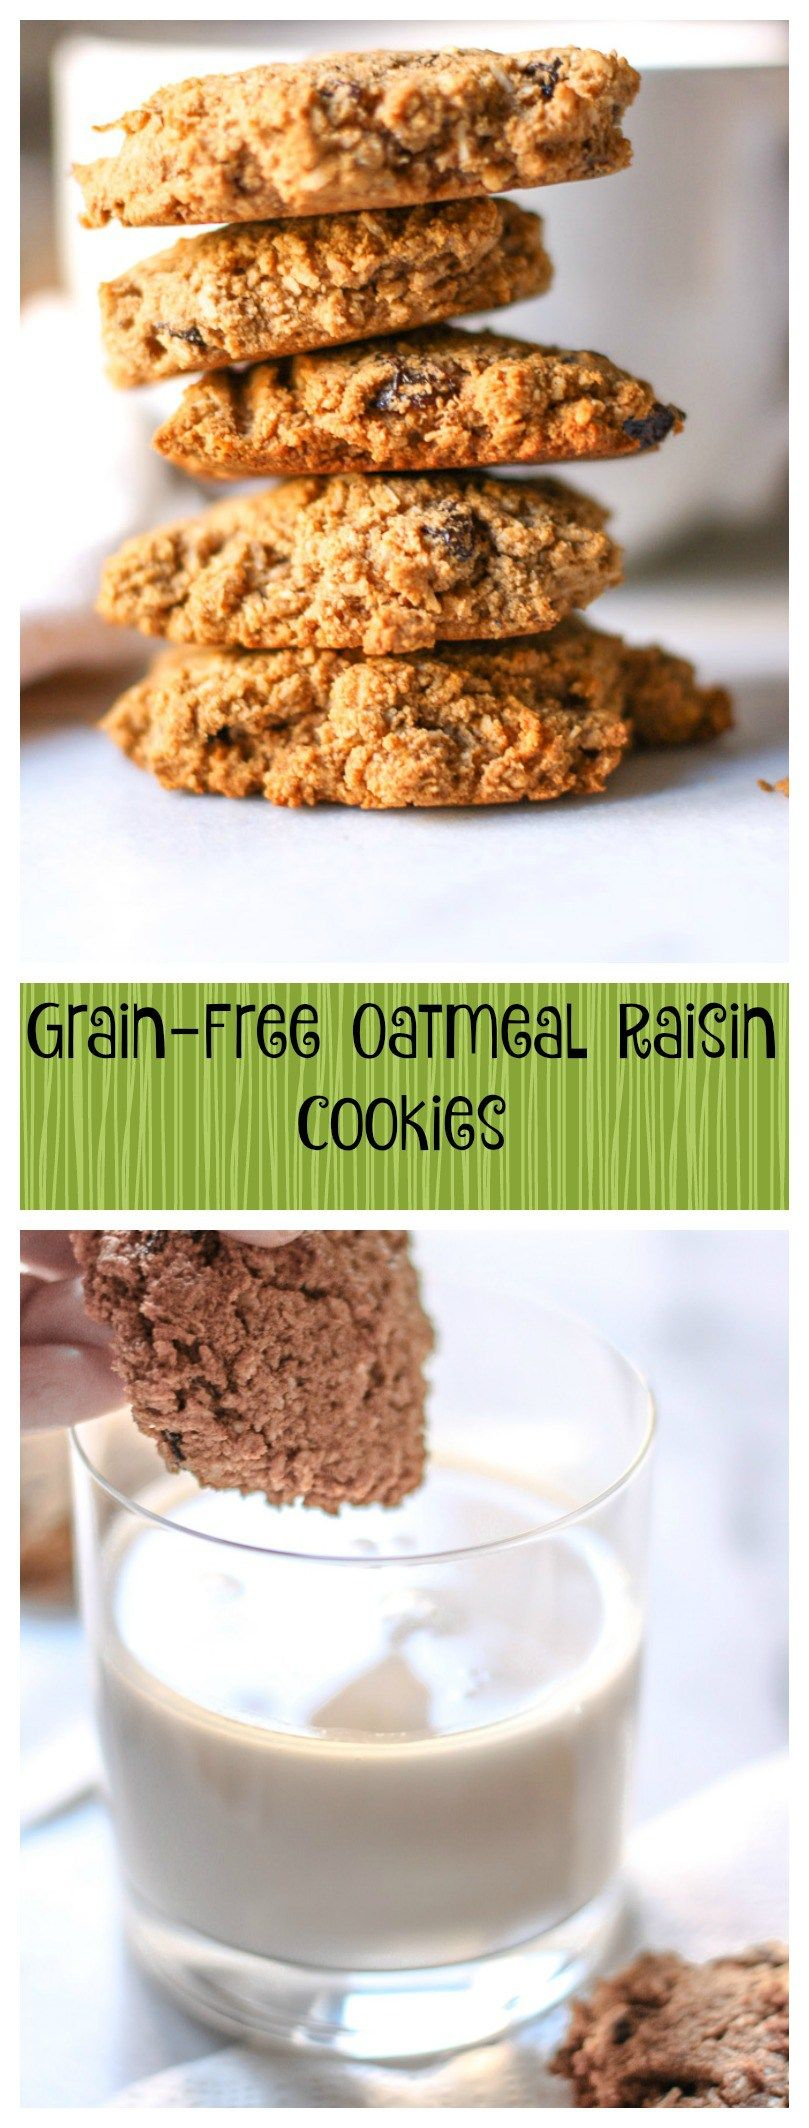 Grain-Free Oatmeal Raisin Cookies. I promise you that no one will know this recipe is grain-free.  The texture and taste of these cookies are exactly the same as traditional one! It's like magic!